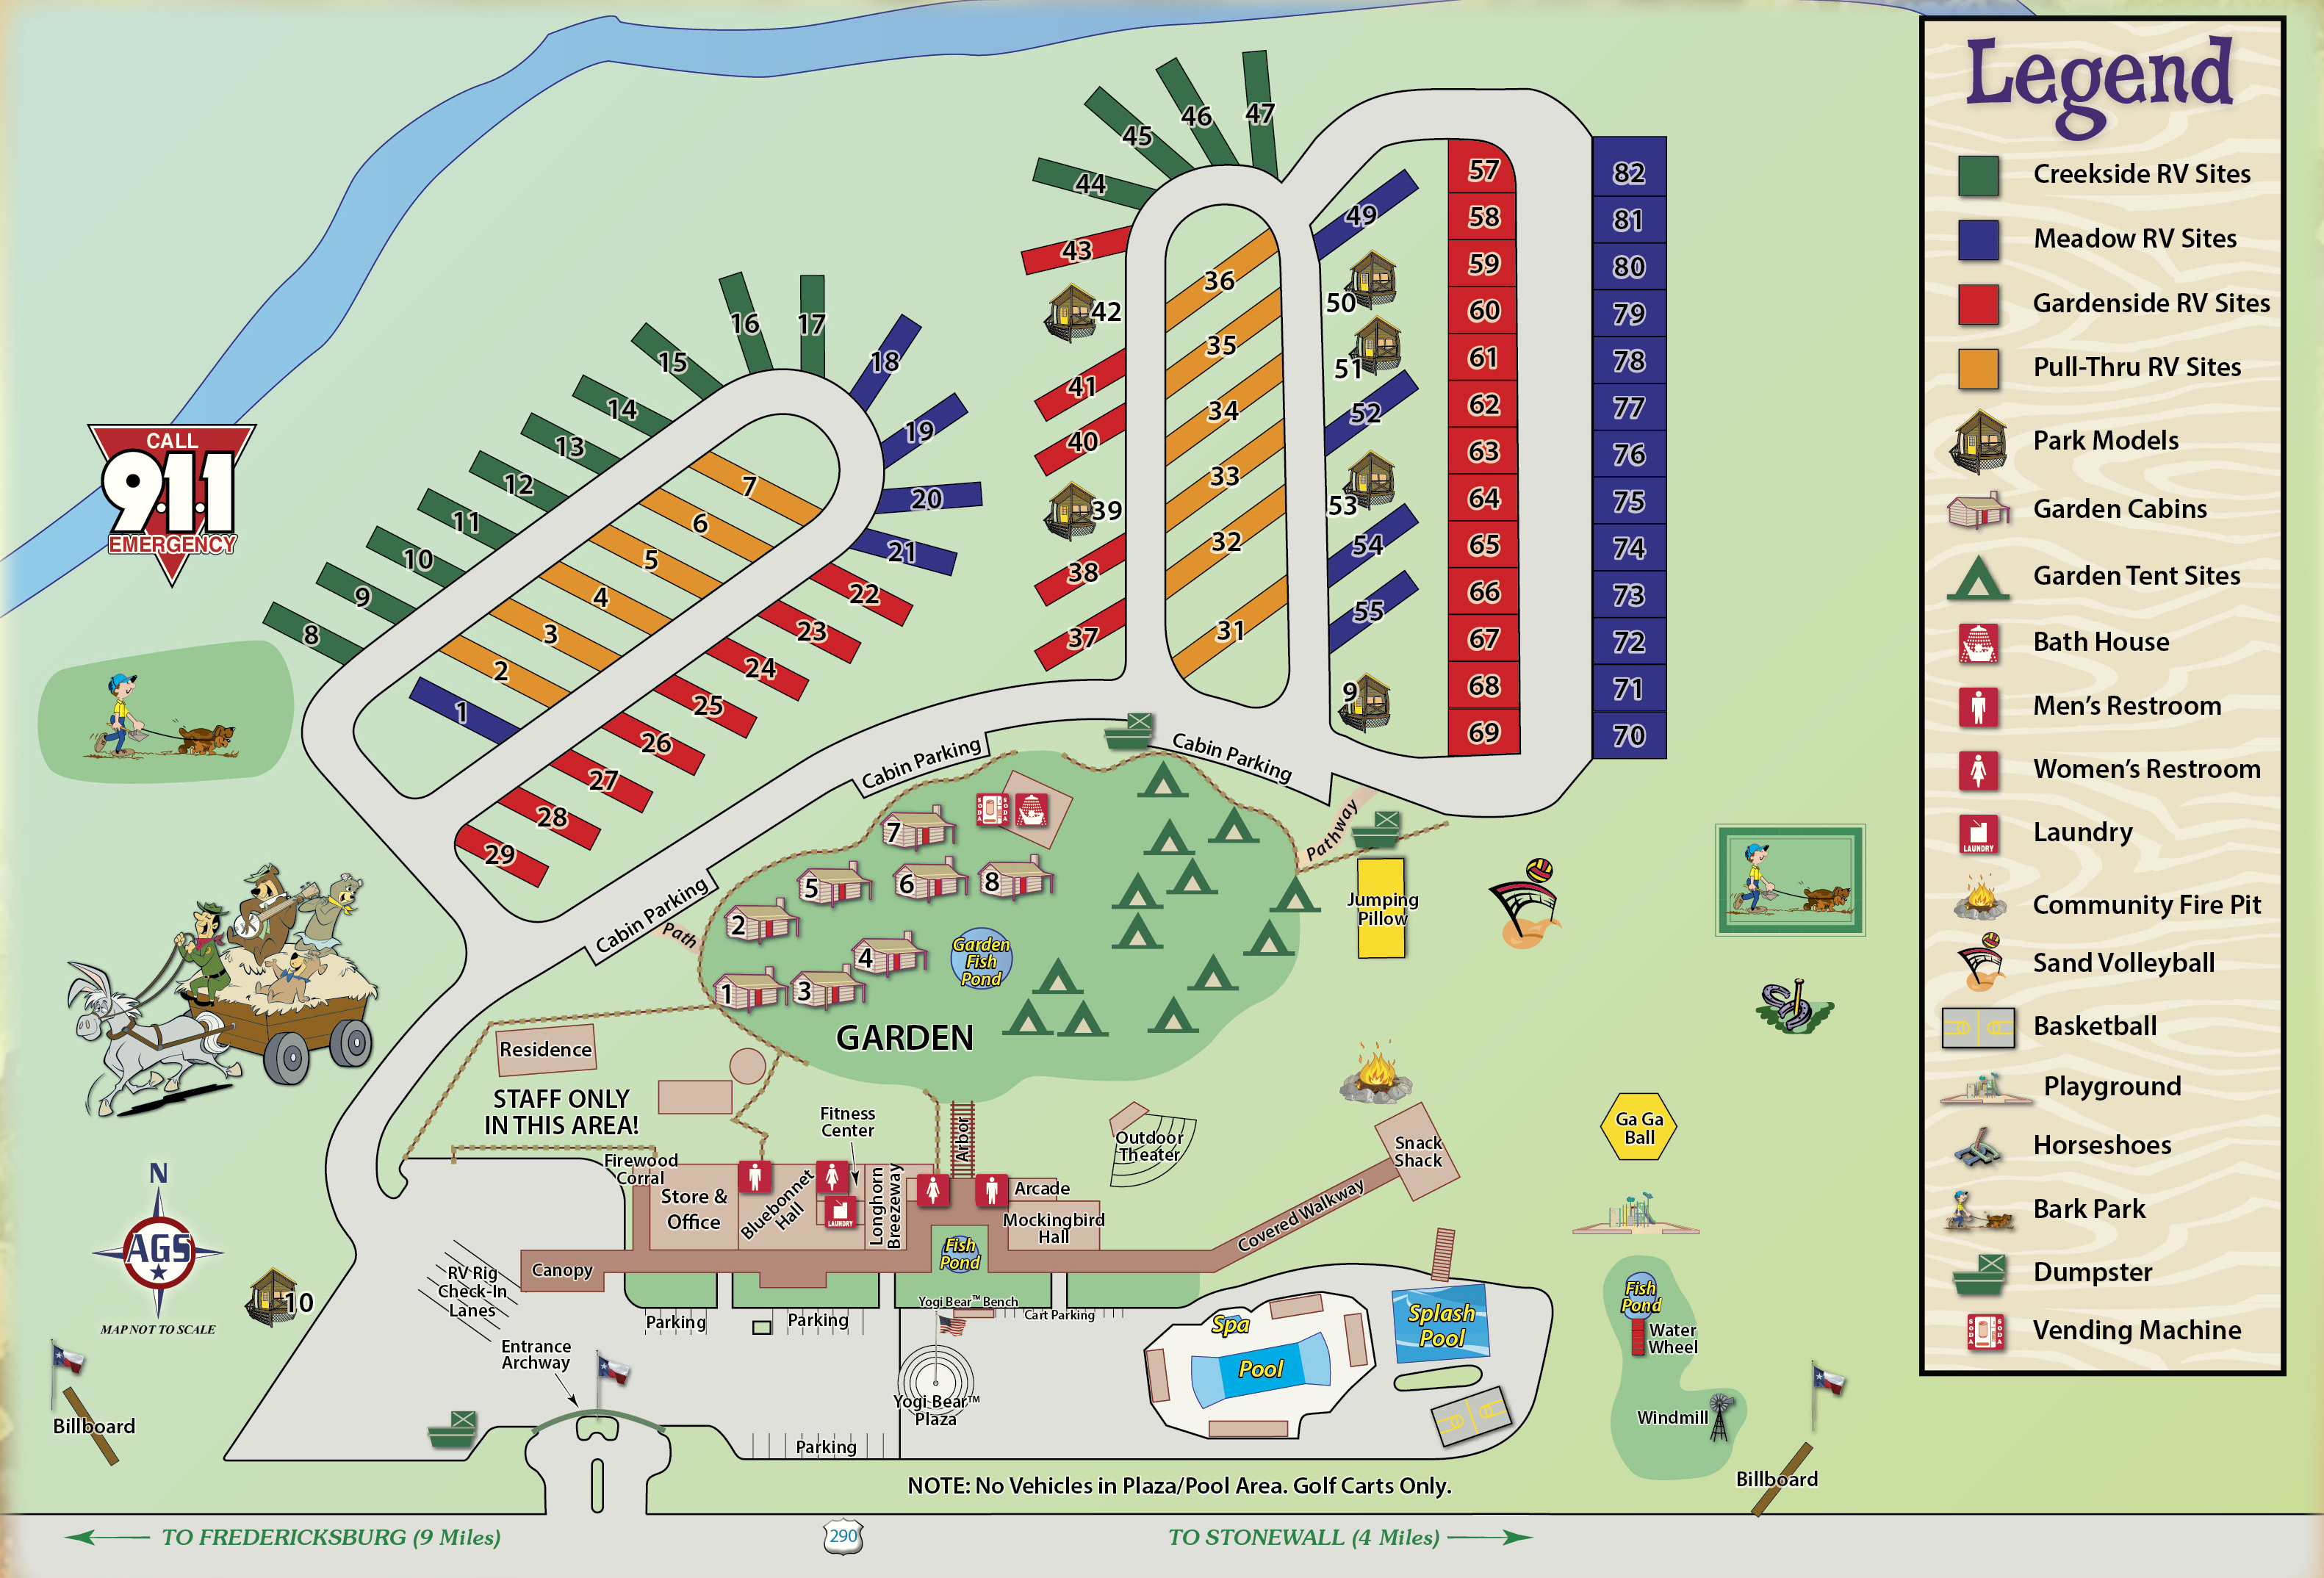 Wine Country Area Camping In Texas | Yogi Bear's Jellystone Park - Hill Country Texas Wineries Map